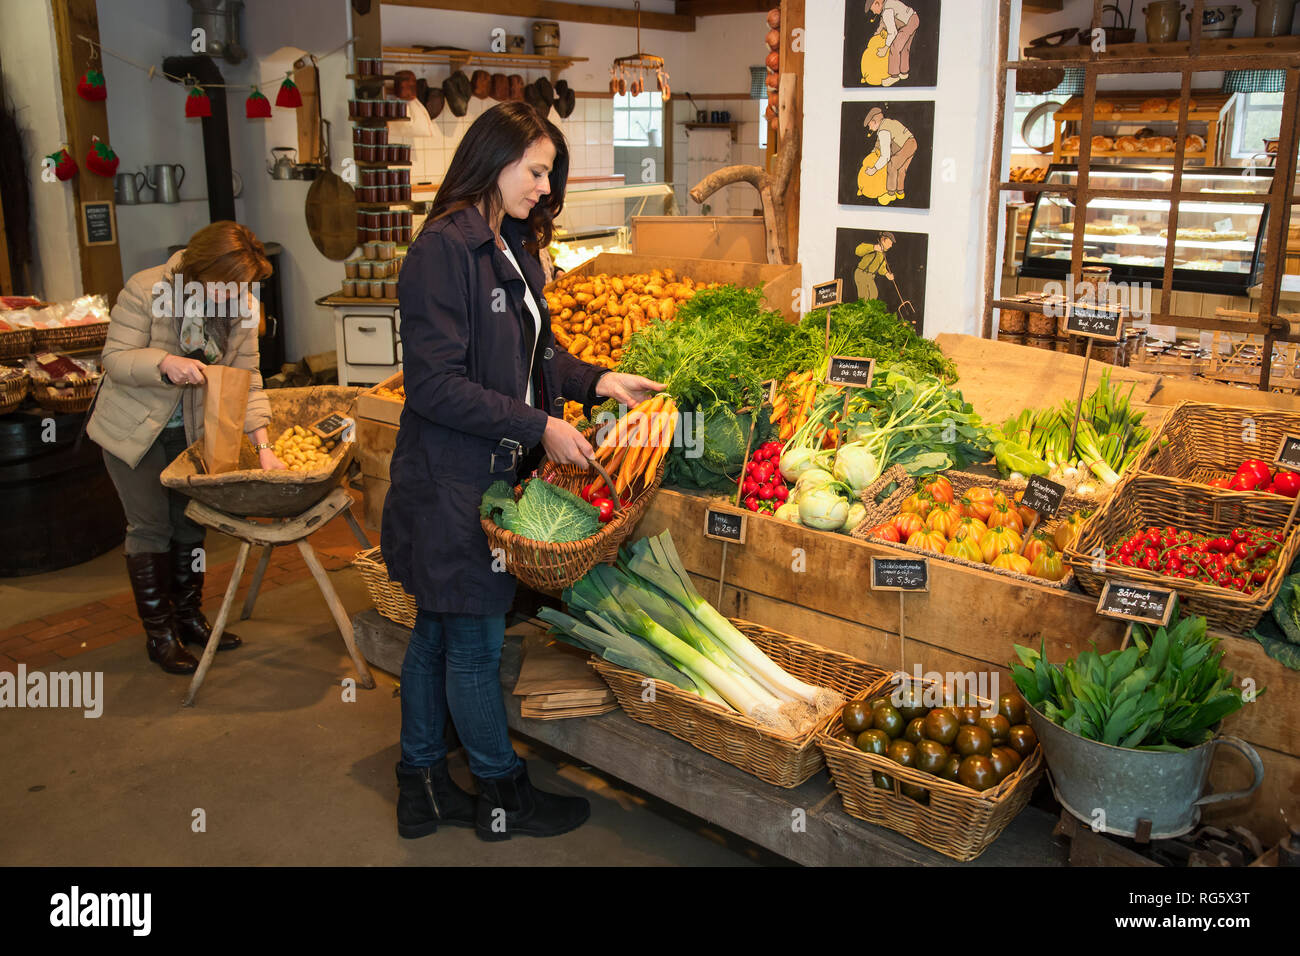 Customer buys carrots in farm shop, asparagus yard Schulte-Scherlebeck, Kundin kauft Mšhren im Hofladen, Spargelhof Schulte-Scherlebeck Stock Photo